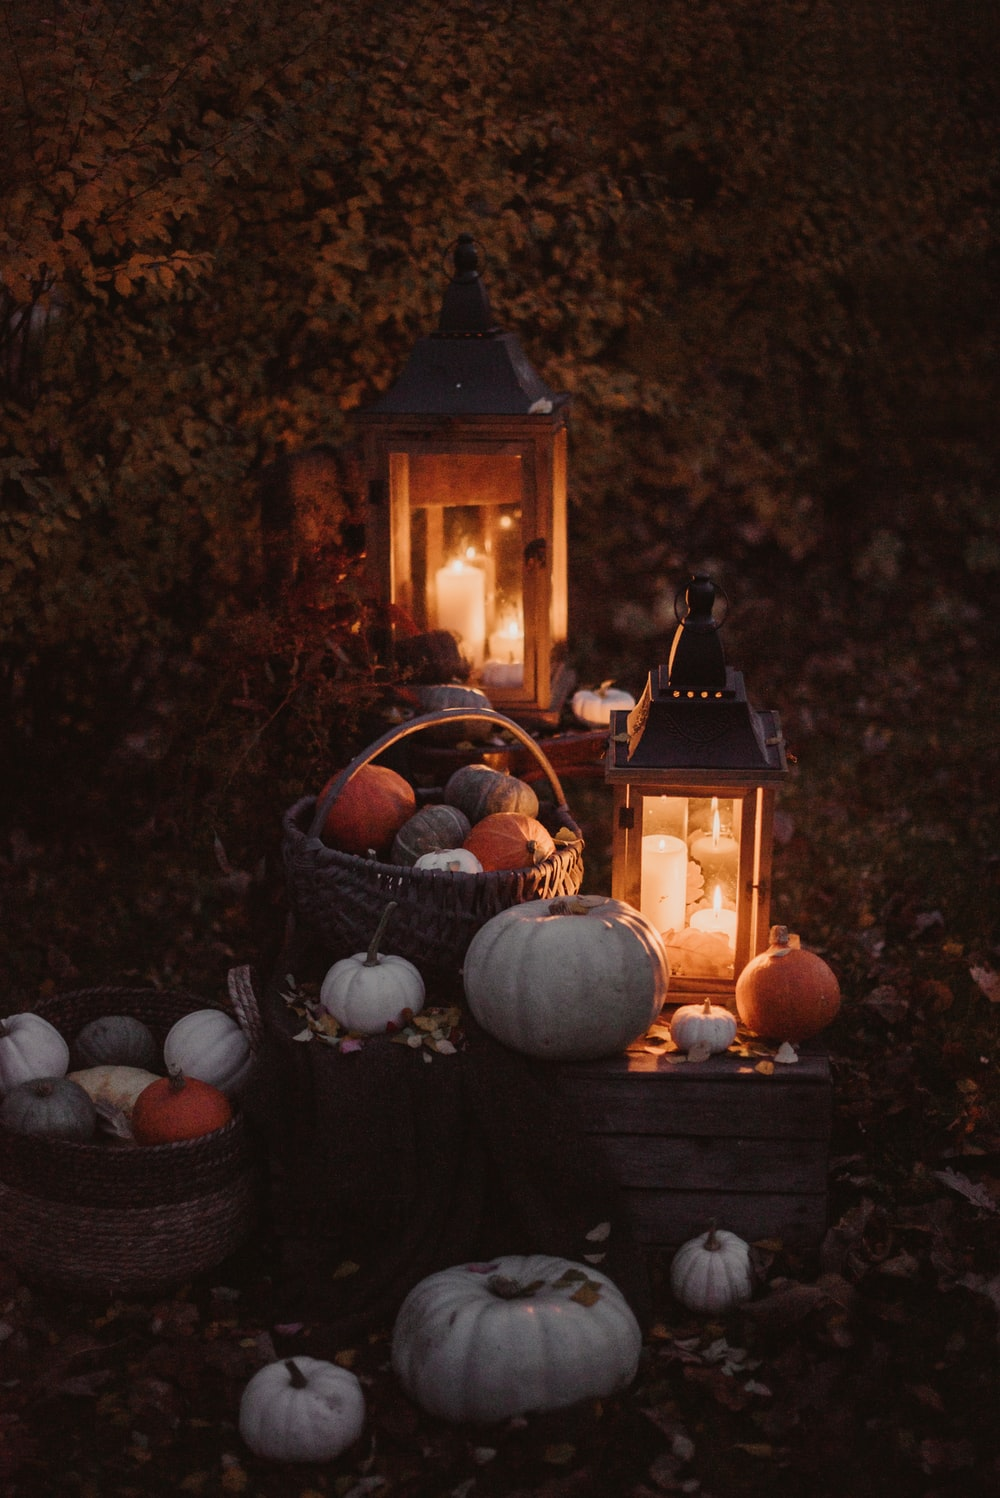 pumpkins and lit candles